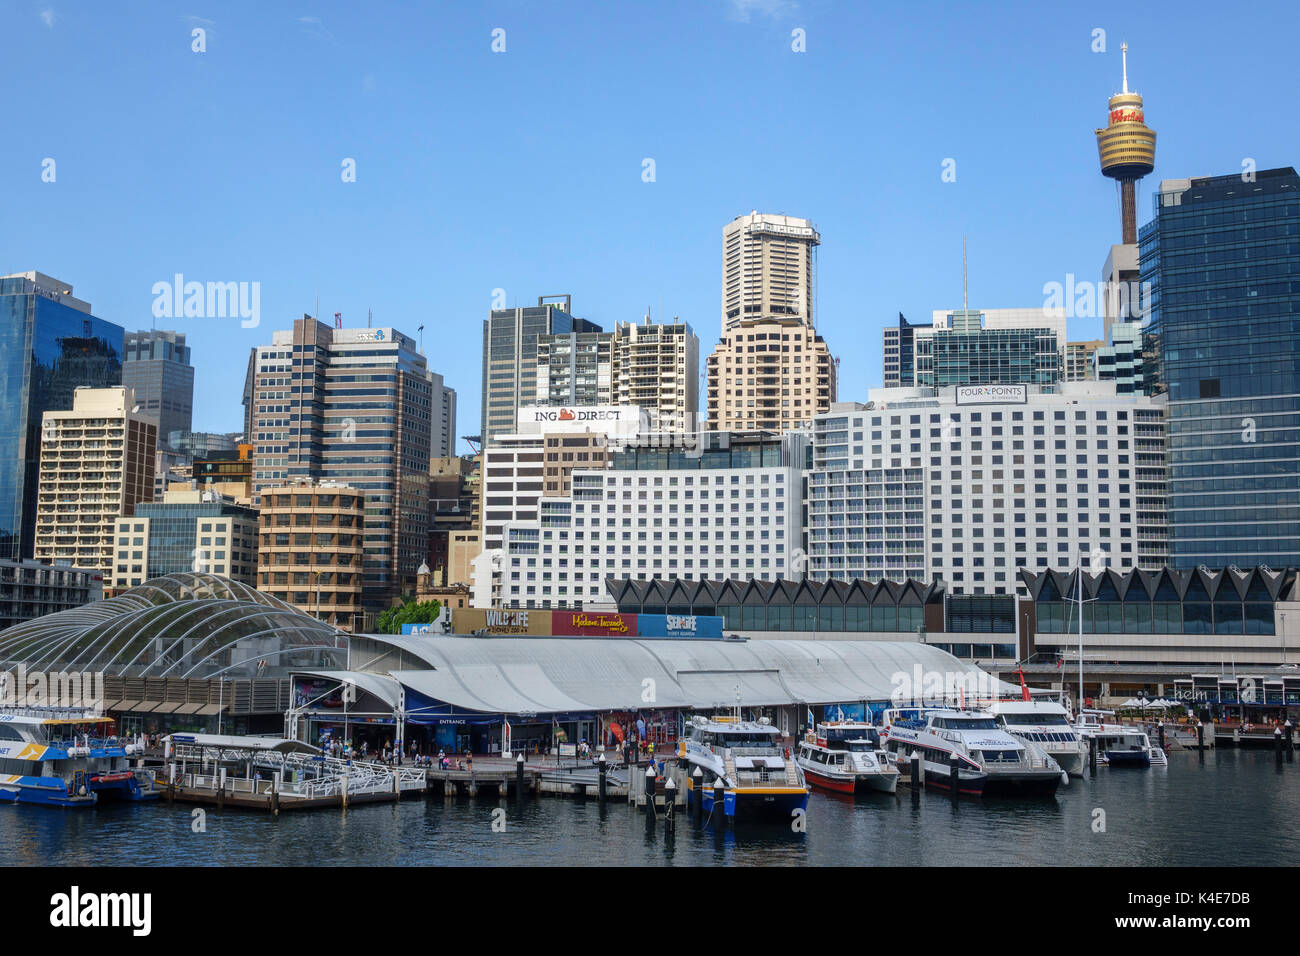 Sydney Central Business District Skyline From Darling Harbour Australia Includes The Sydney Aquarium And Madame Tussauds - Stock Image